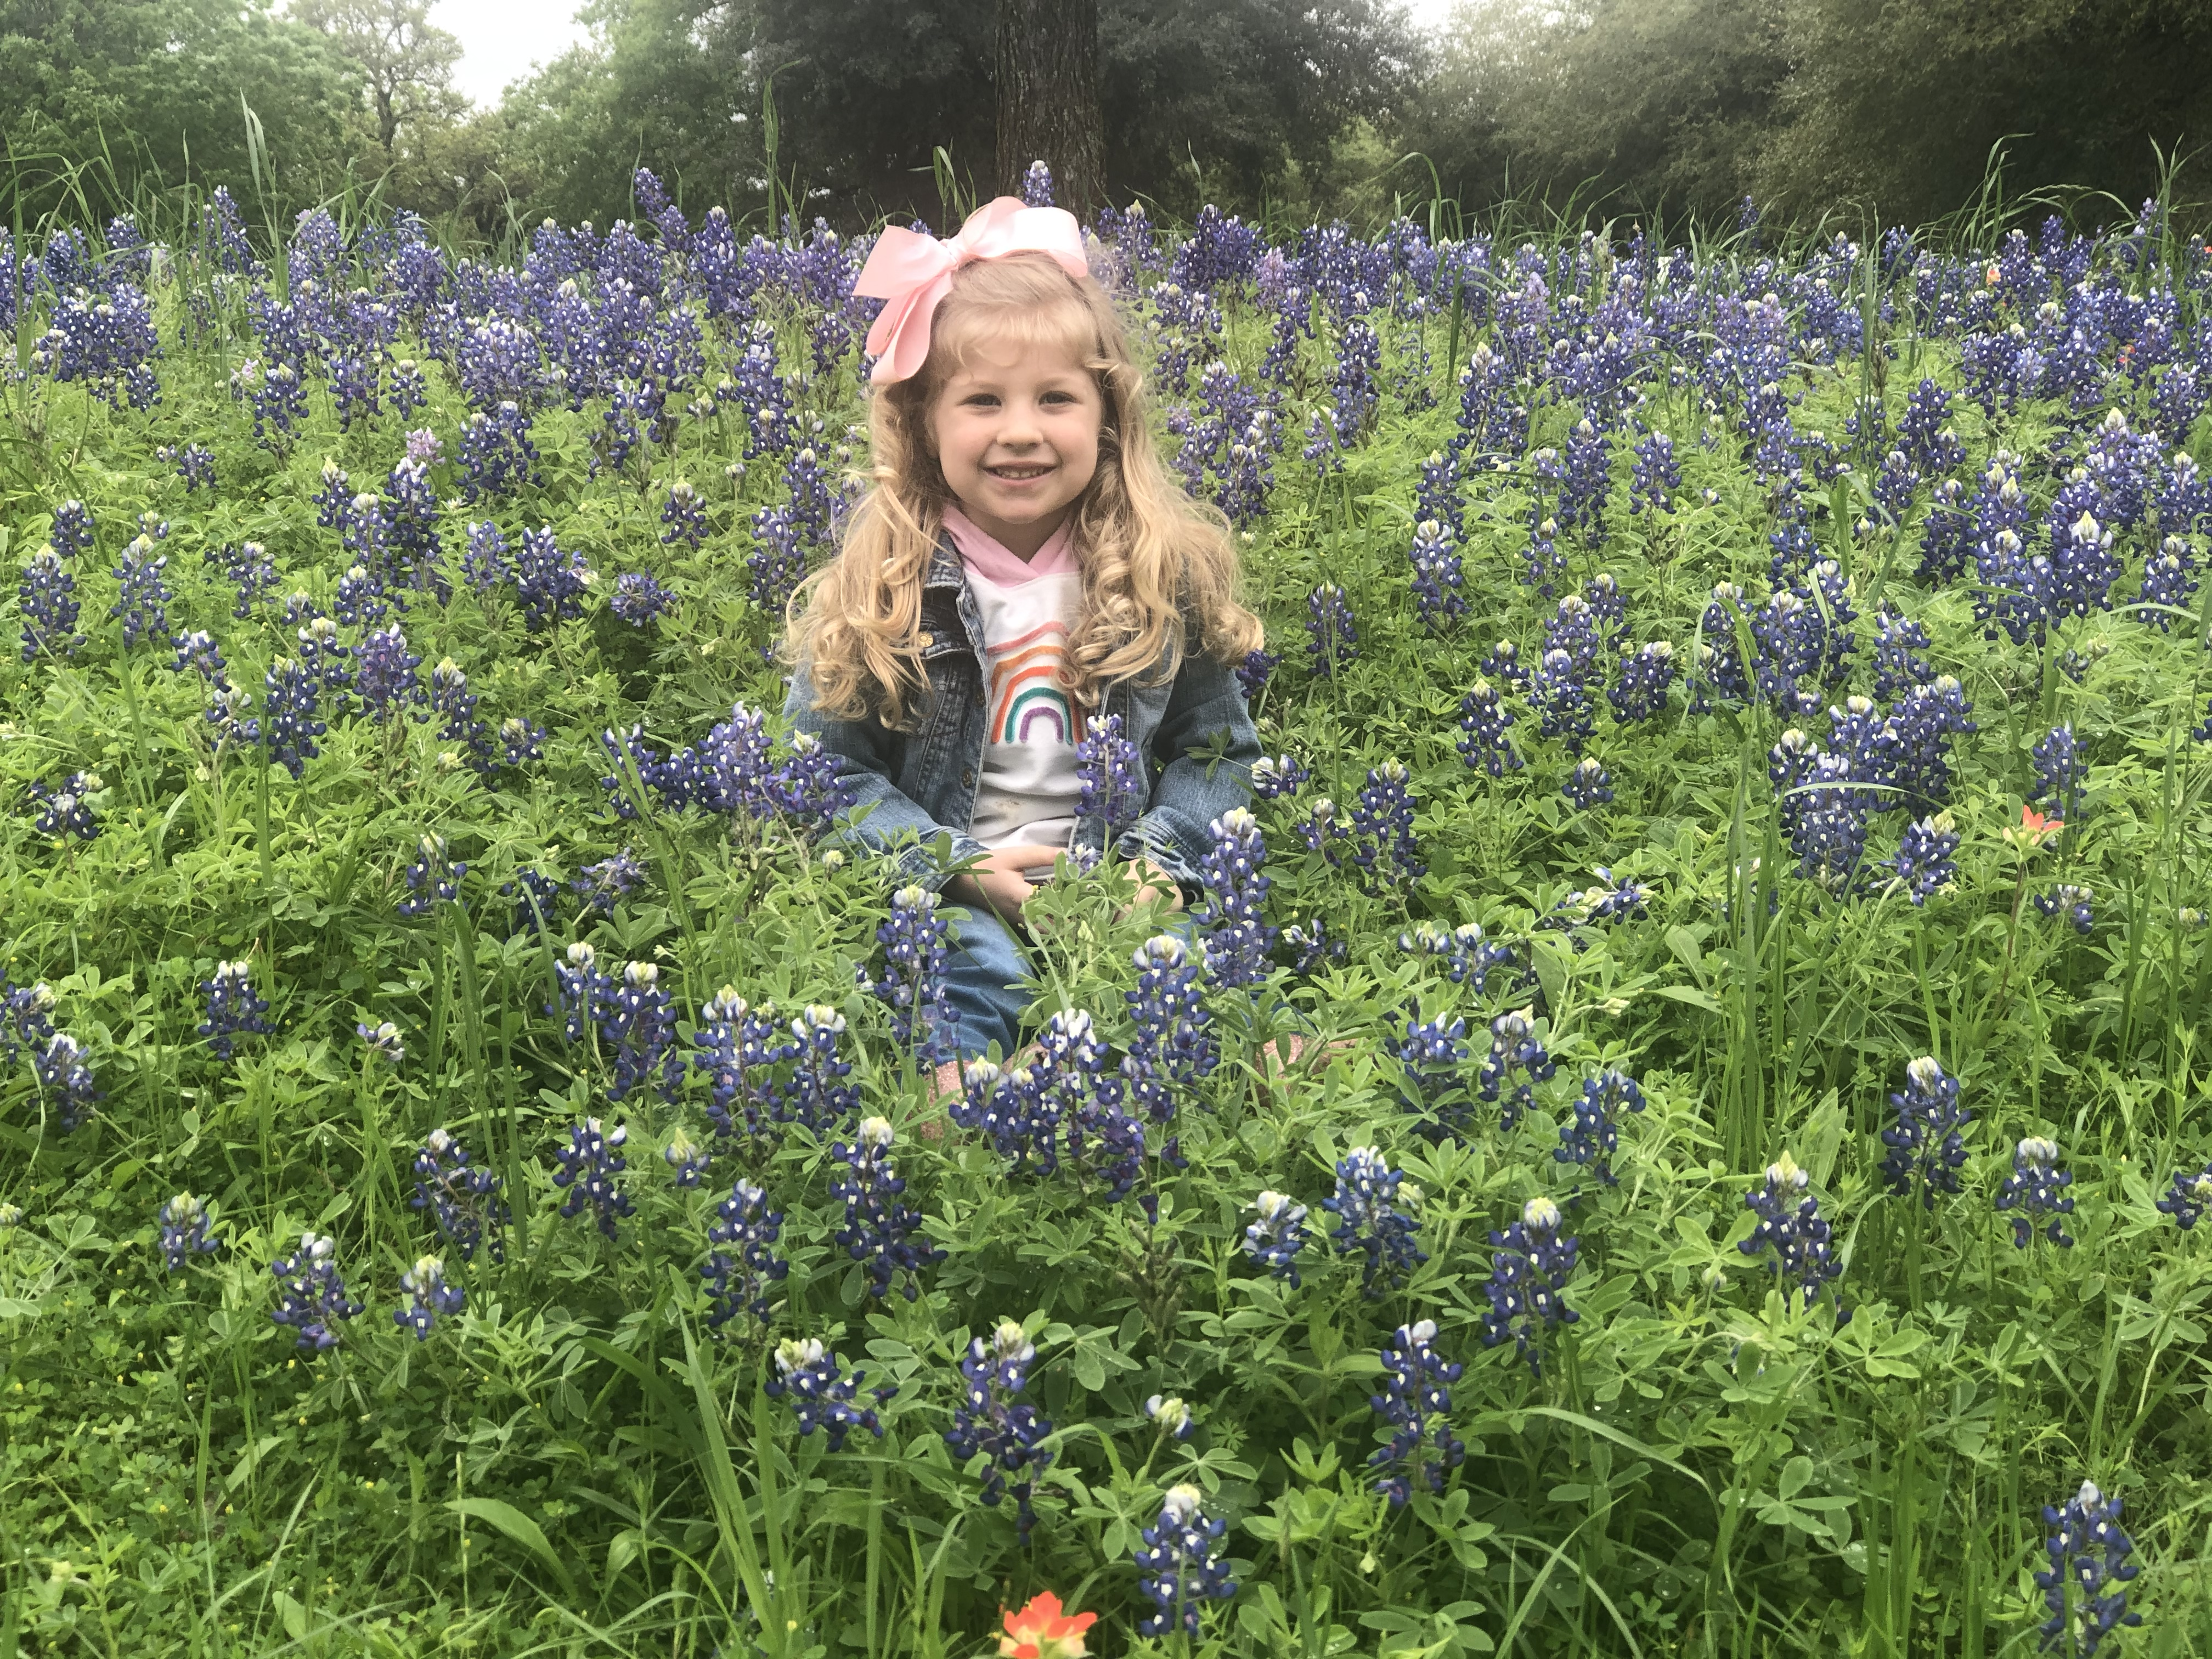 My daughter Gracie Jo in our front yard bluebonnet patch (Courtesy Sonya Pastuch)